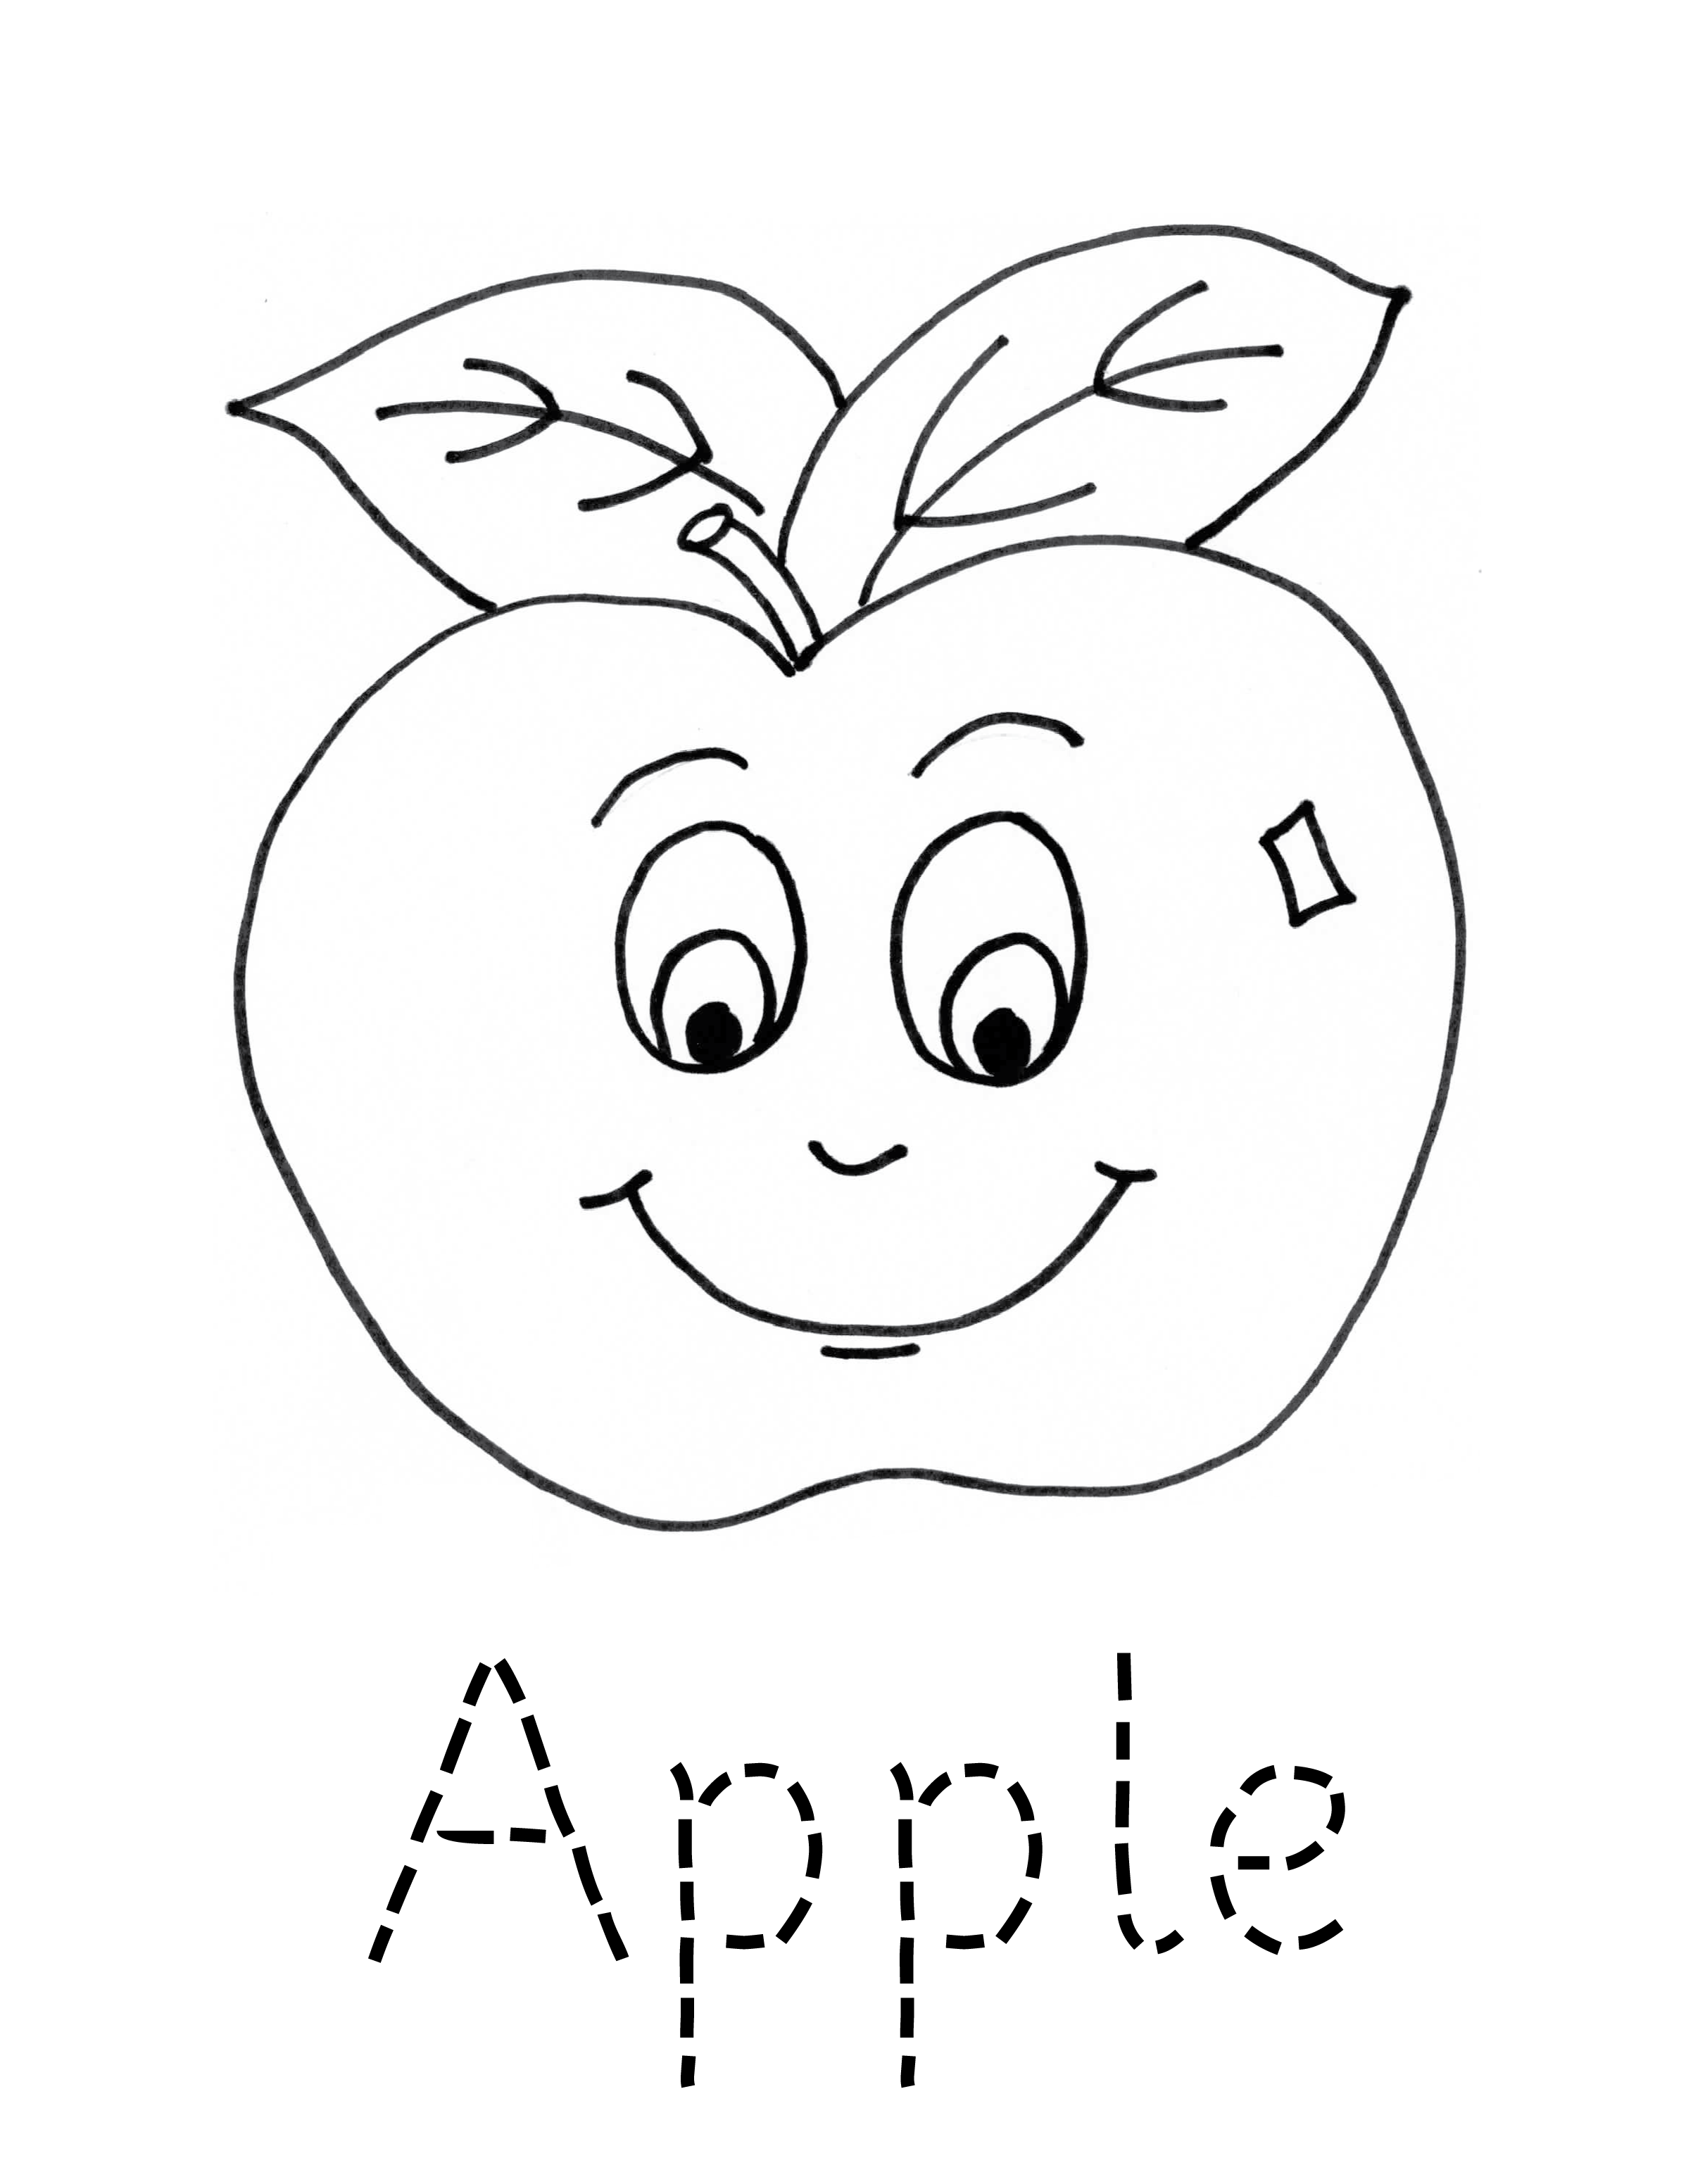 coloring worksheet apple discover the great shade of apple 20 apple coloring pages apple worksheet coloring